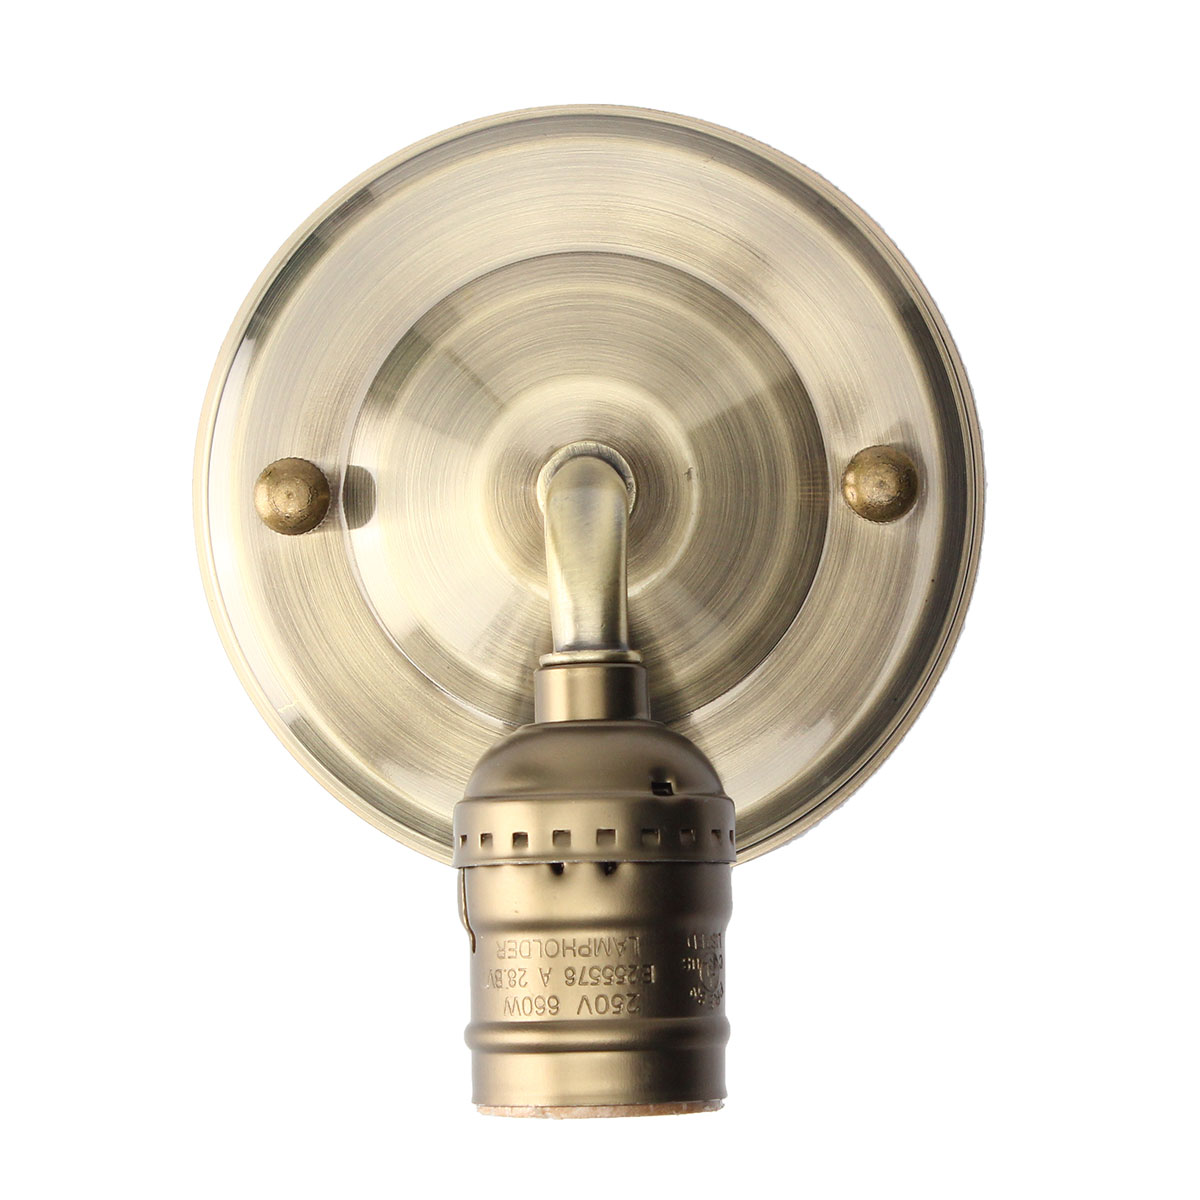 E27 Antique Vintage Wall Light Simple Design Sconce Lamp Bulb Socket Holder Fixture Alex NLD